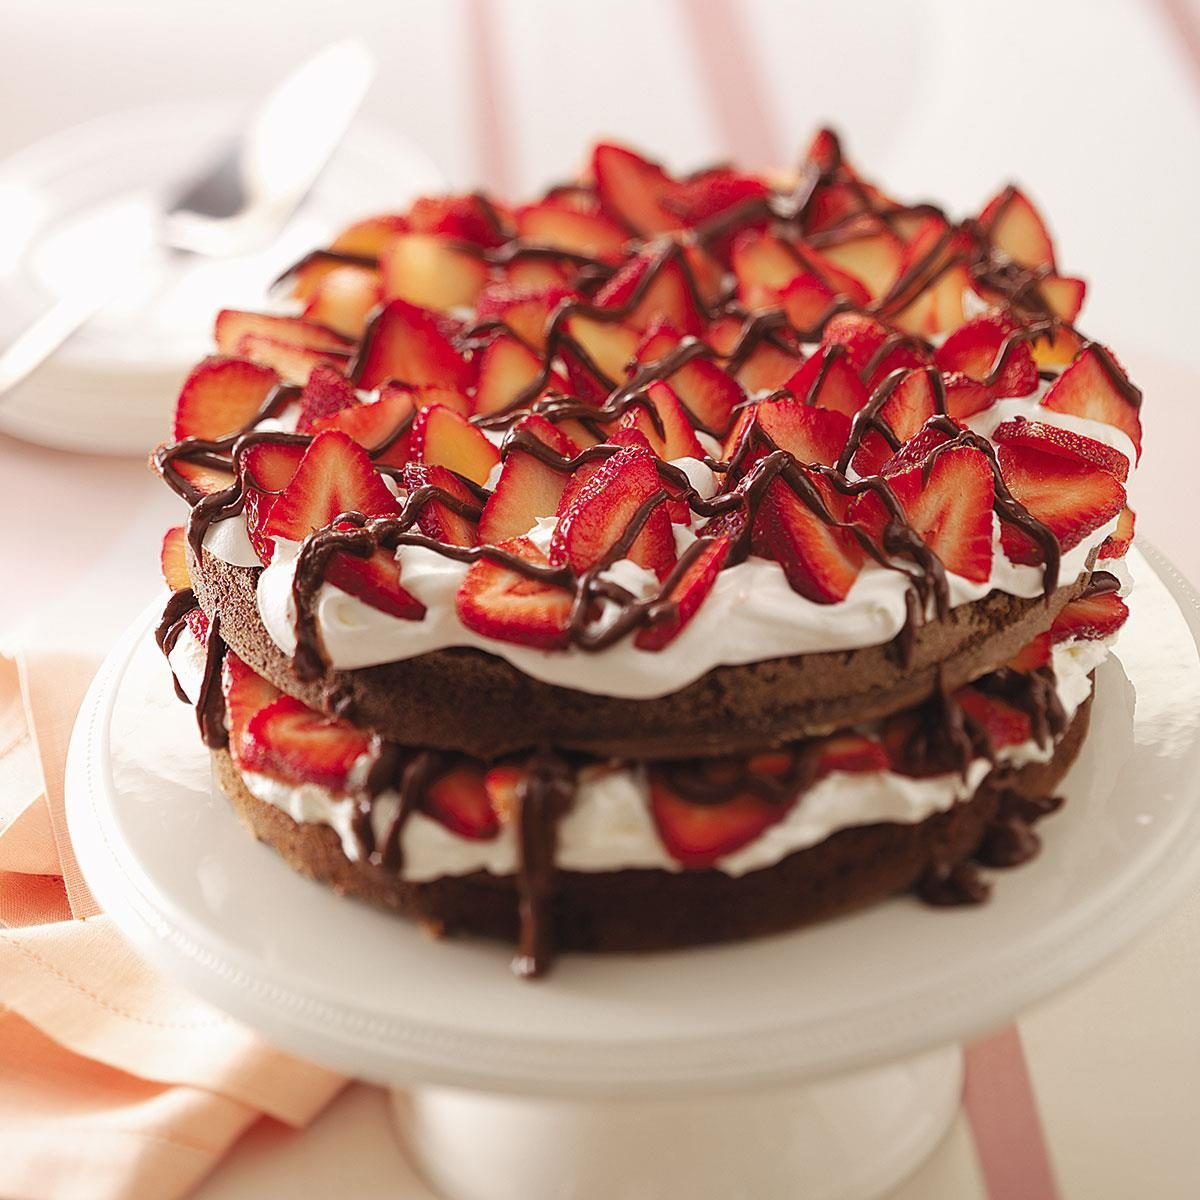 Simple Vanilla Cake With Egg: Chocolate Strawberry Torte Recipe